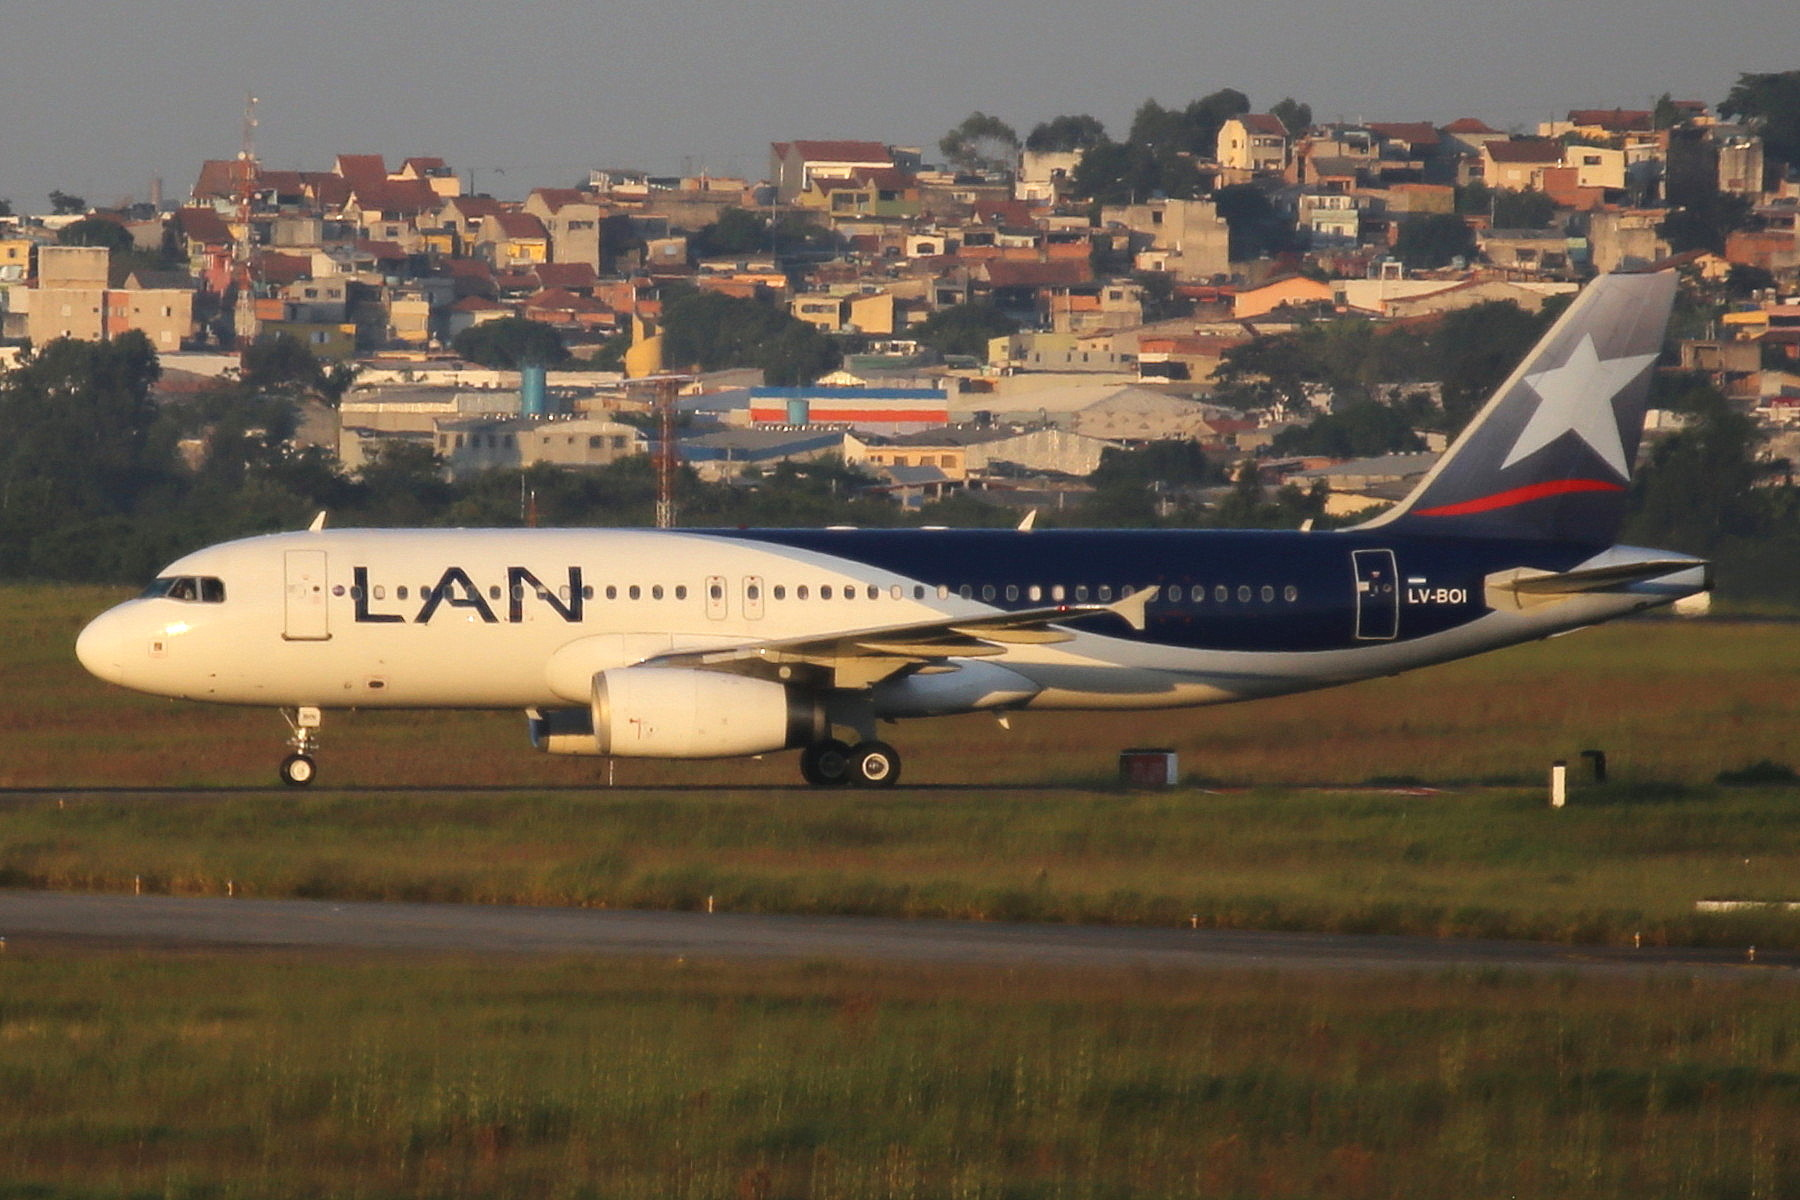 LV-BOI LAN Argentina A320 taken from the roof of the Matiz Hotel at Sao Paulo Guarulhos Airport 27th April 2019 by John Wood